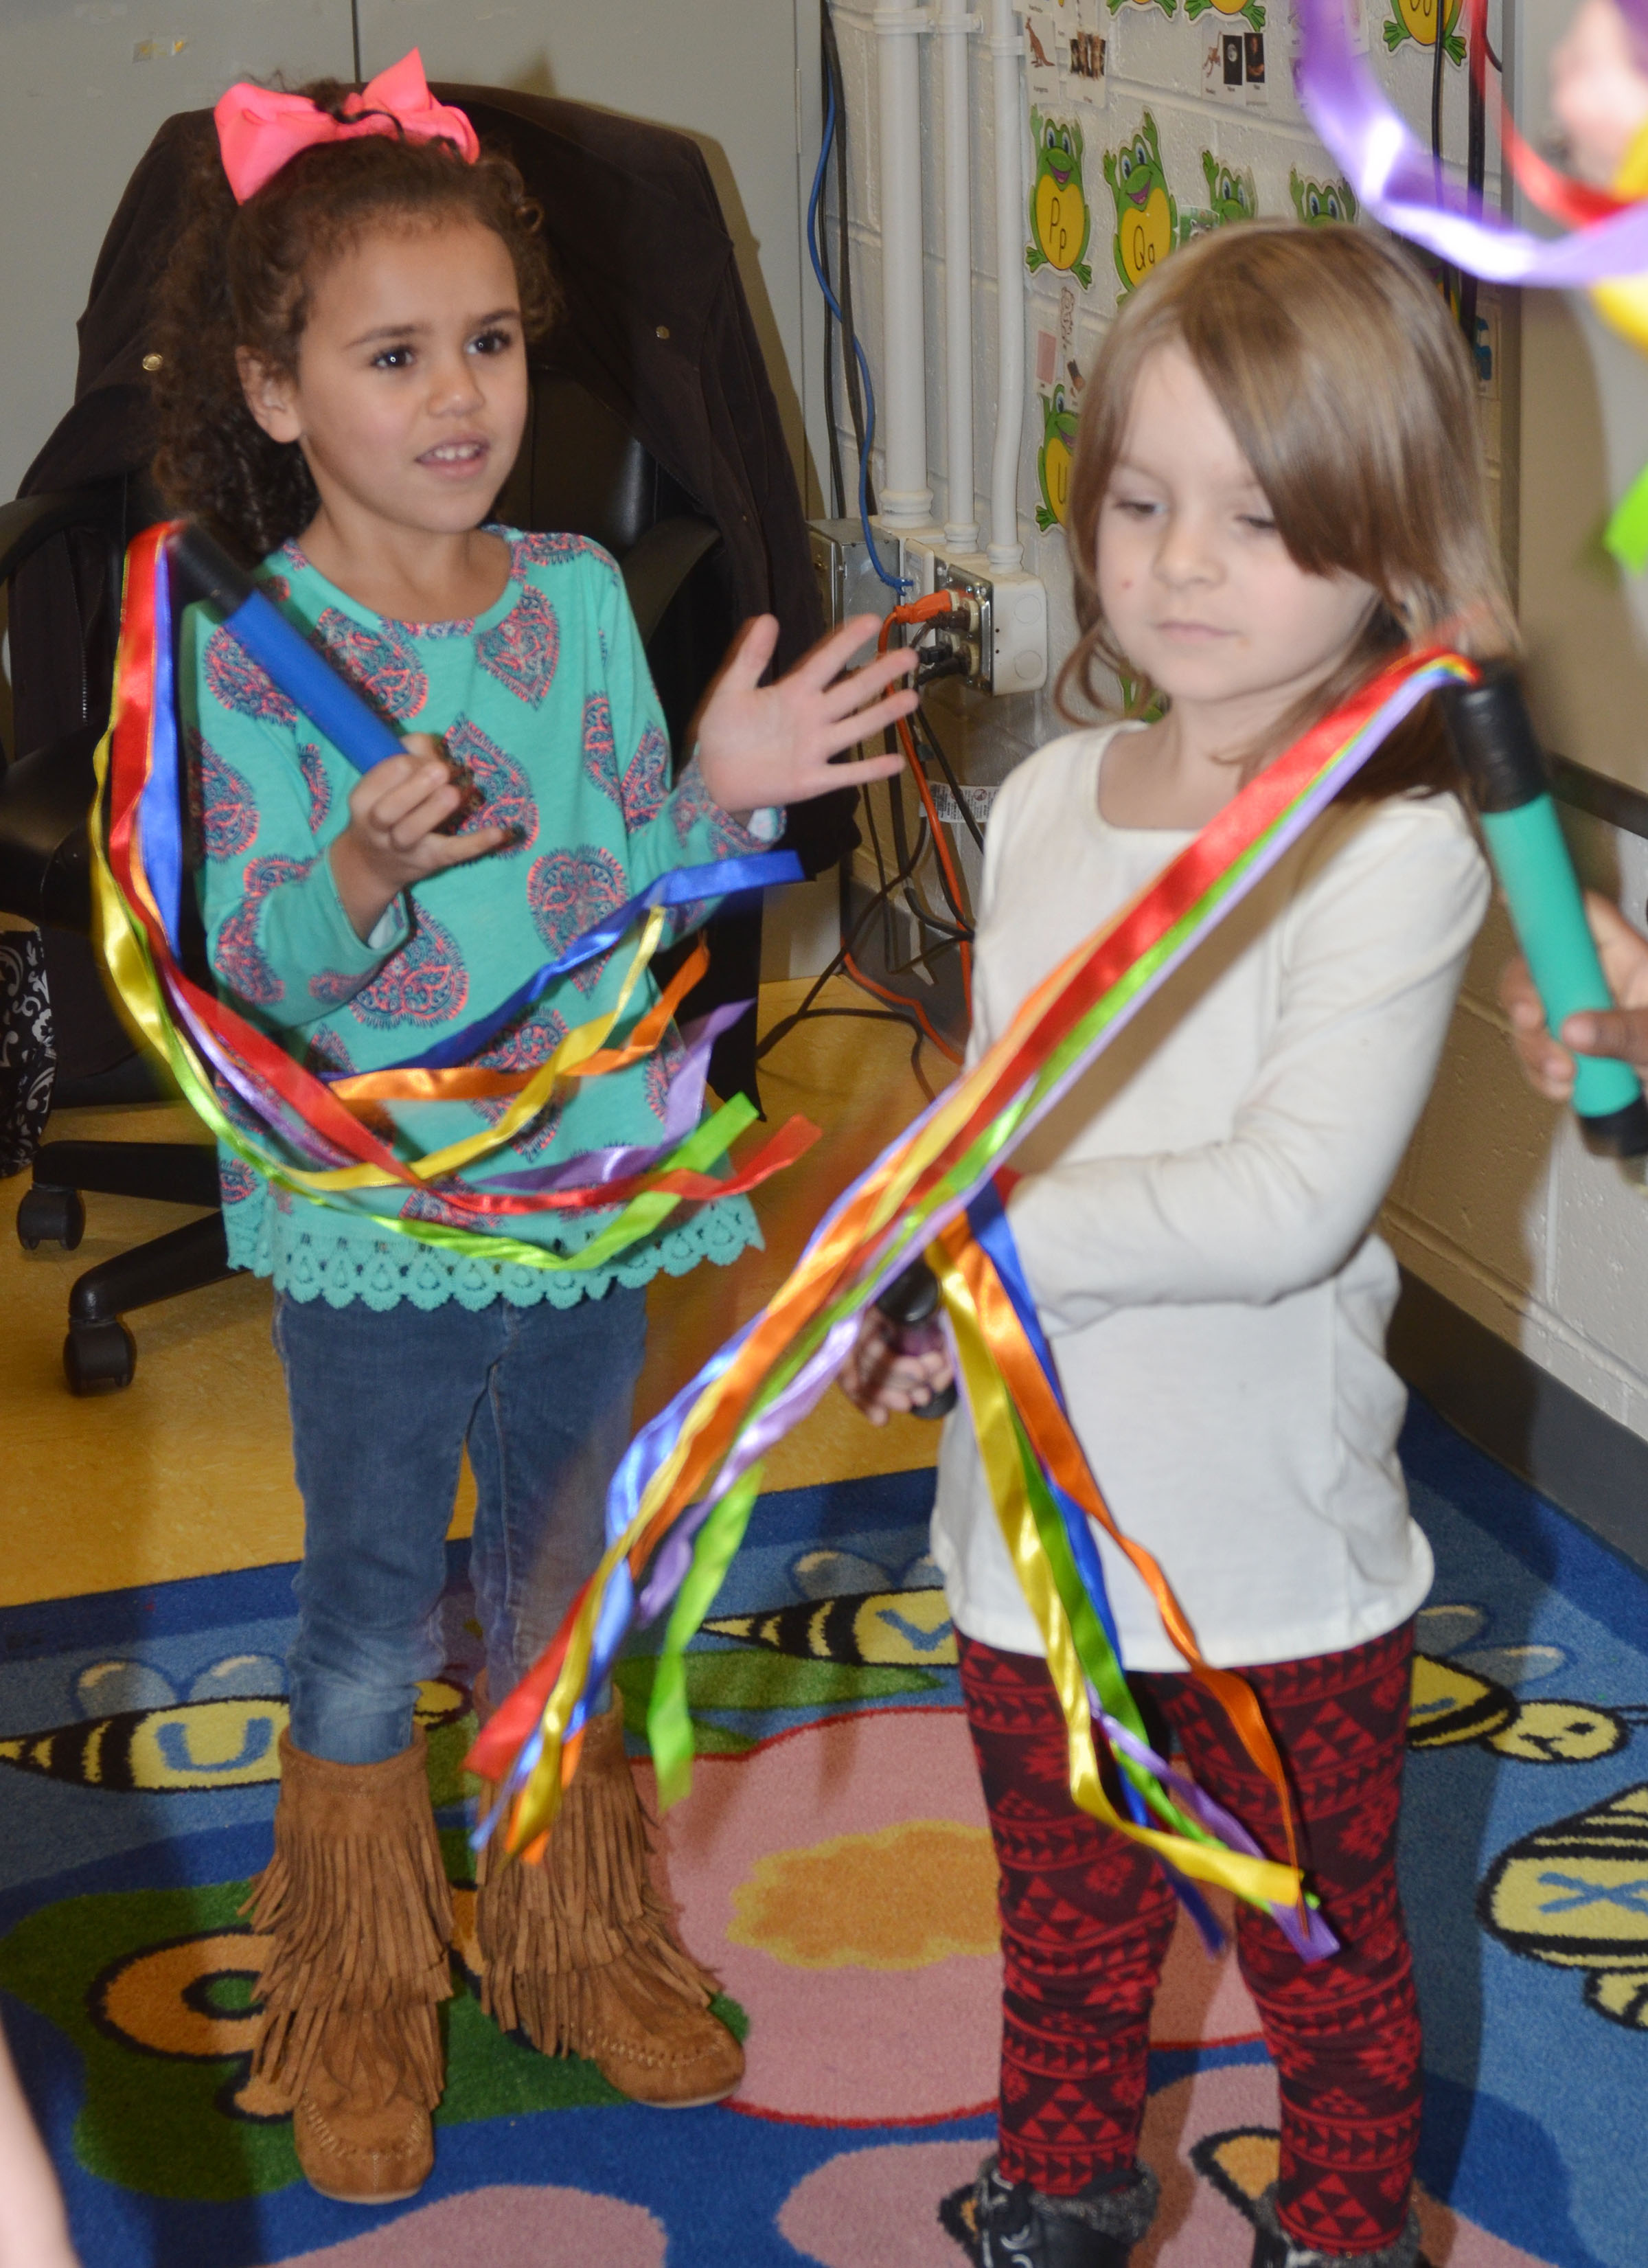 CES preschool students Adelyn Litsey, at left, and Daisy Rakes dance with their ribbons.